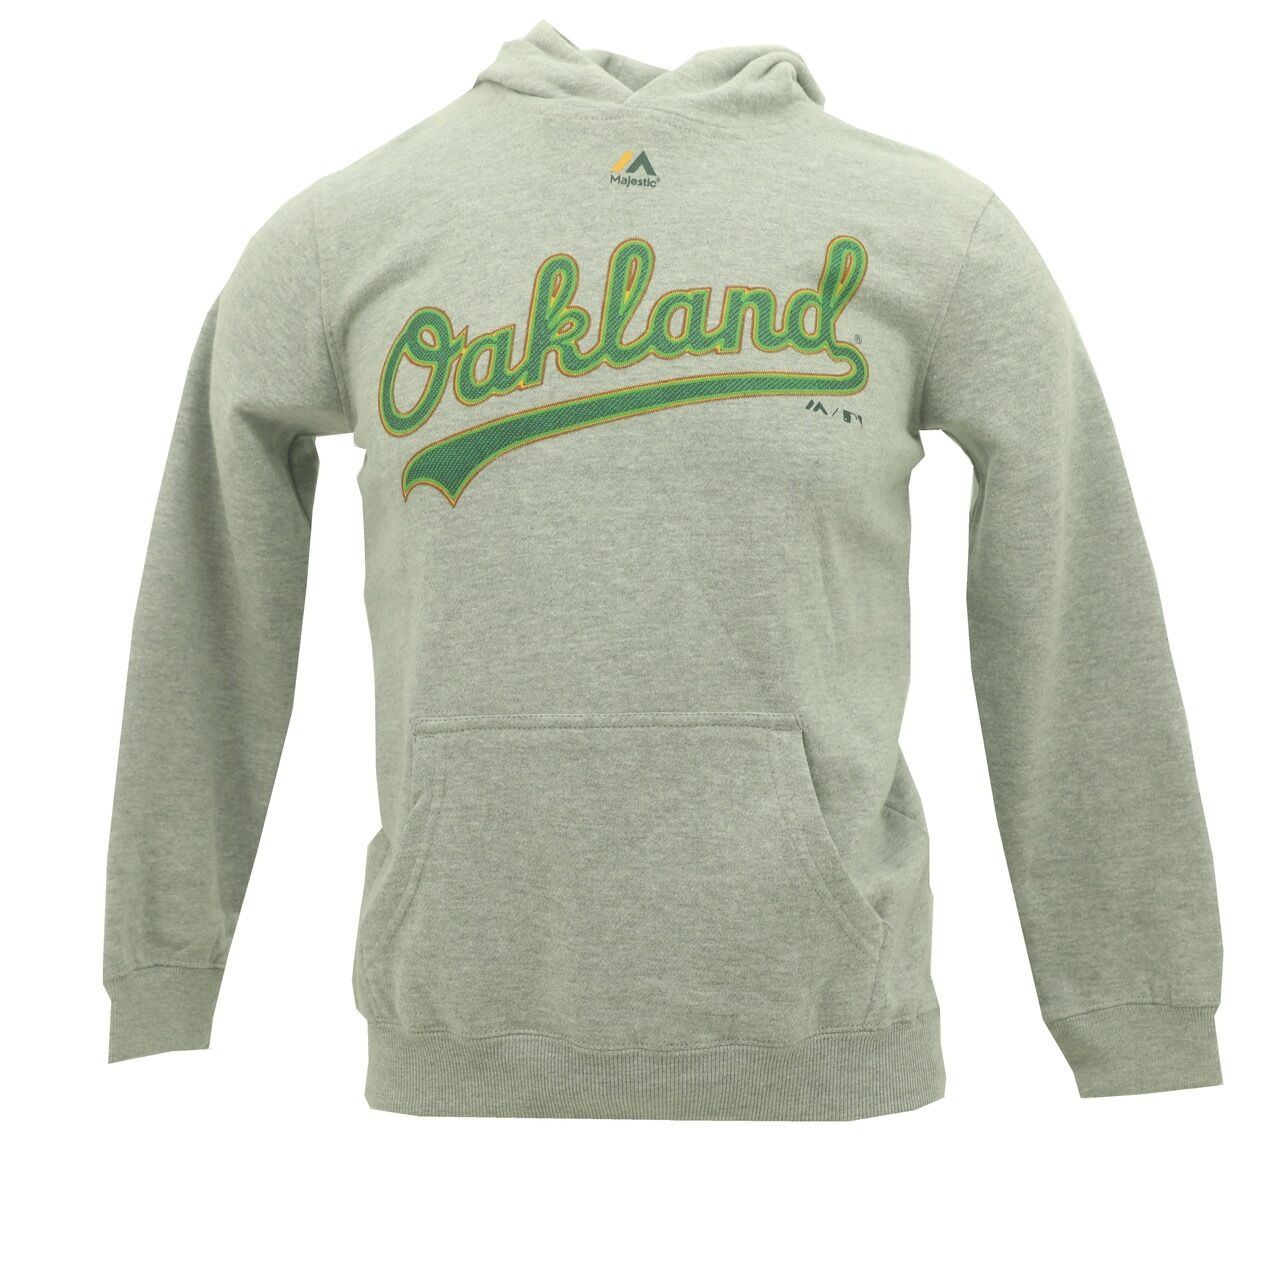 buy popular 416b4 92d76 Details about Youth Size Oakland Athletics Official Majestic MLB Sweatshirt  New With Tags